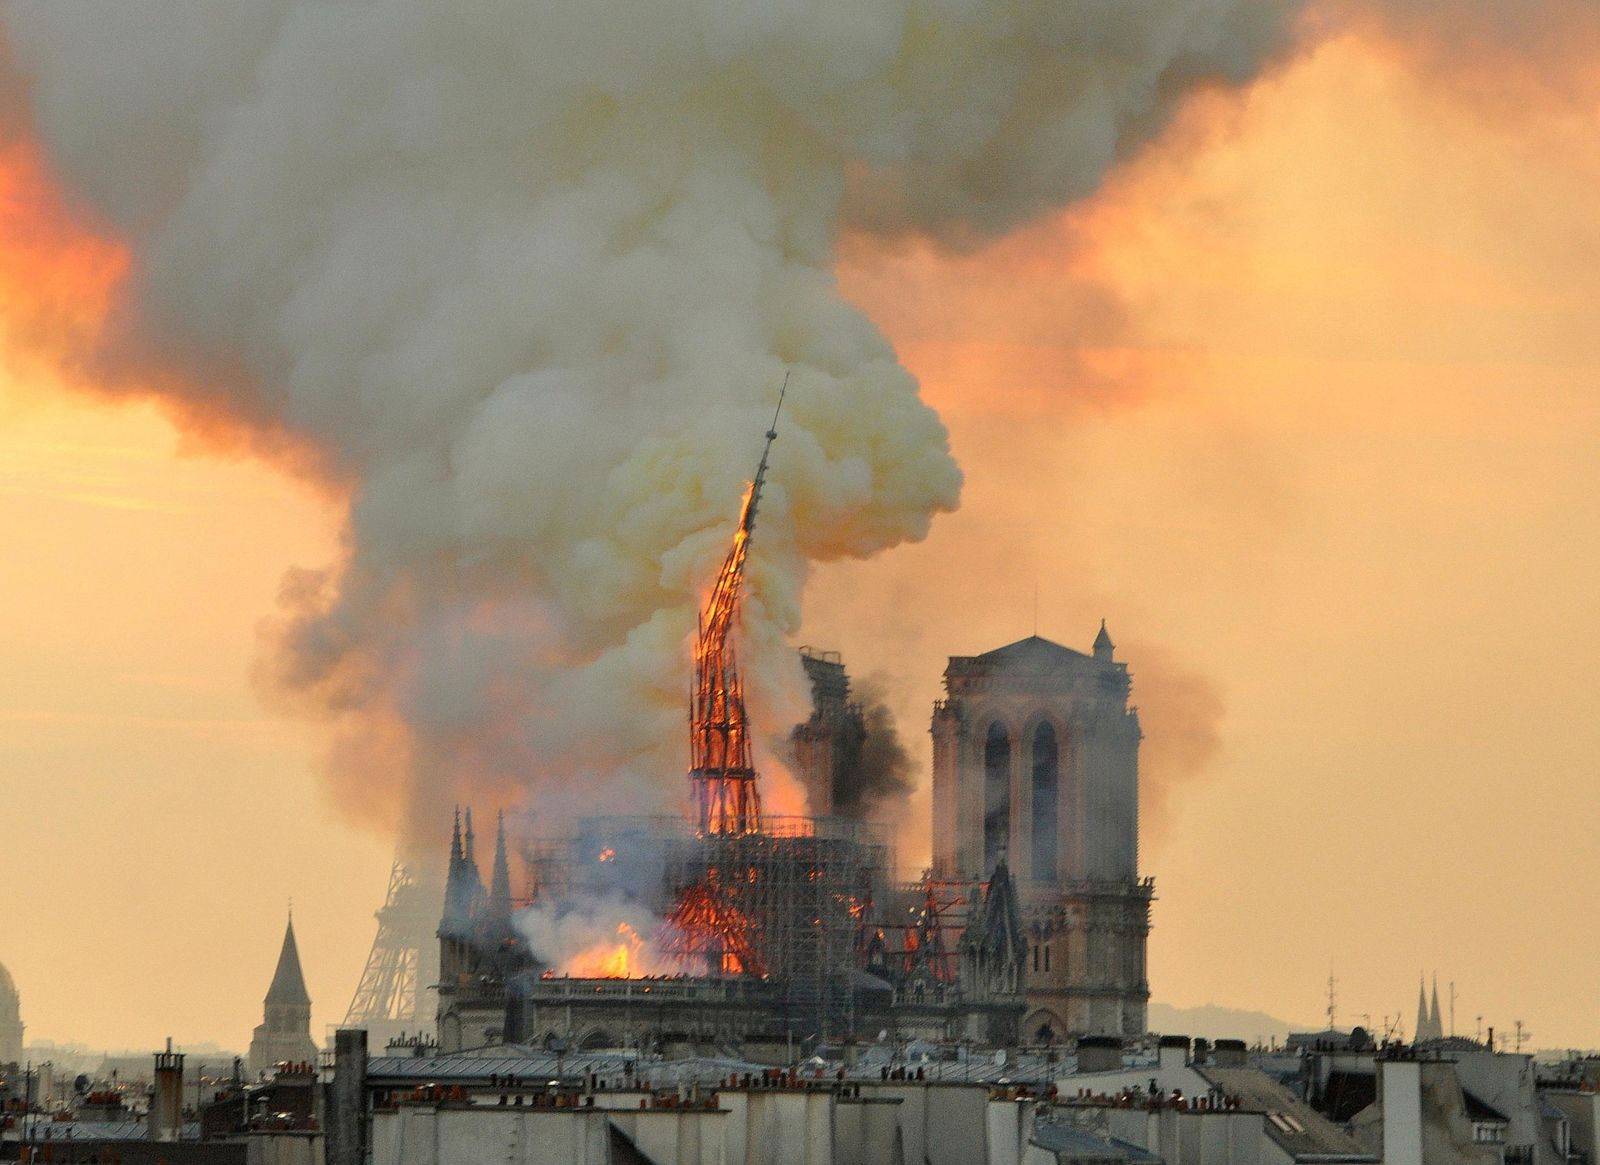 In this image made available on Tuesday April 16, 2019 flames and smoke rise from the blaze as the spire starts to topple on Notre Dame cathedral in Paris, Monday, April 15, 2019. (AP Photo/Thierry Mallet)